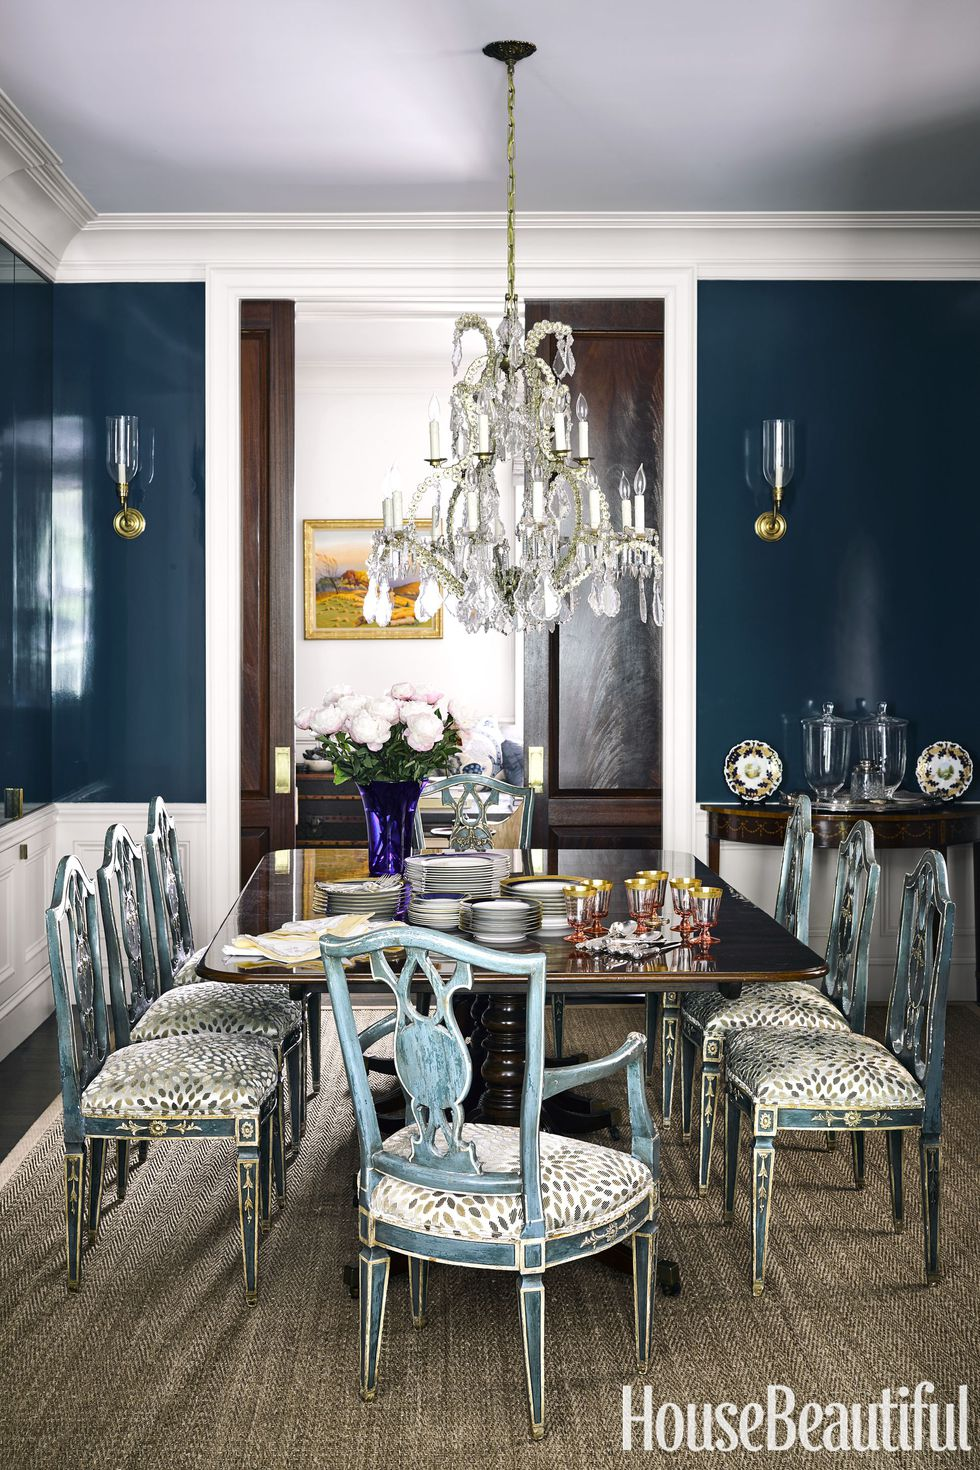 French Country Dining Room Mahogany Wood Table Refurbished Vintage Chairs Leopard Print Tulip Teal Navy Blue Walls Wainscotting Ideas